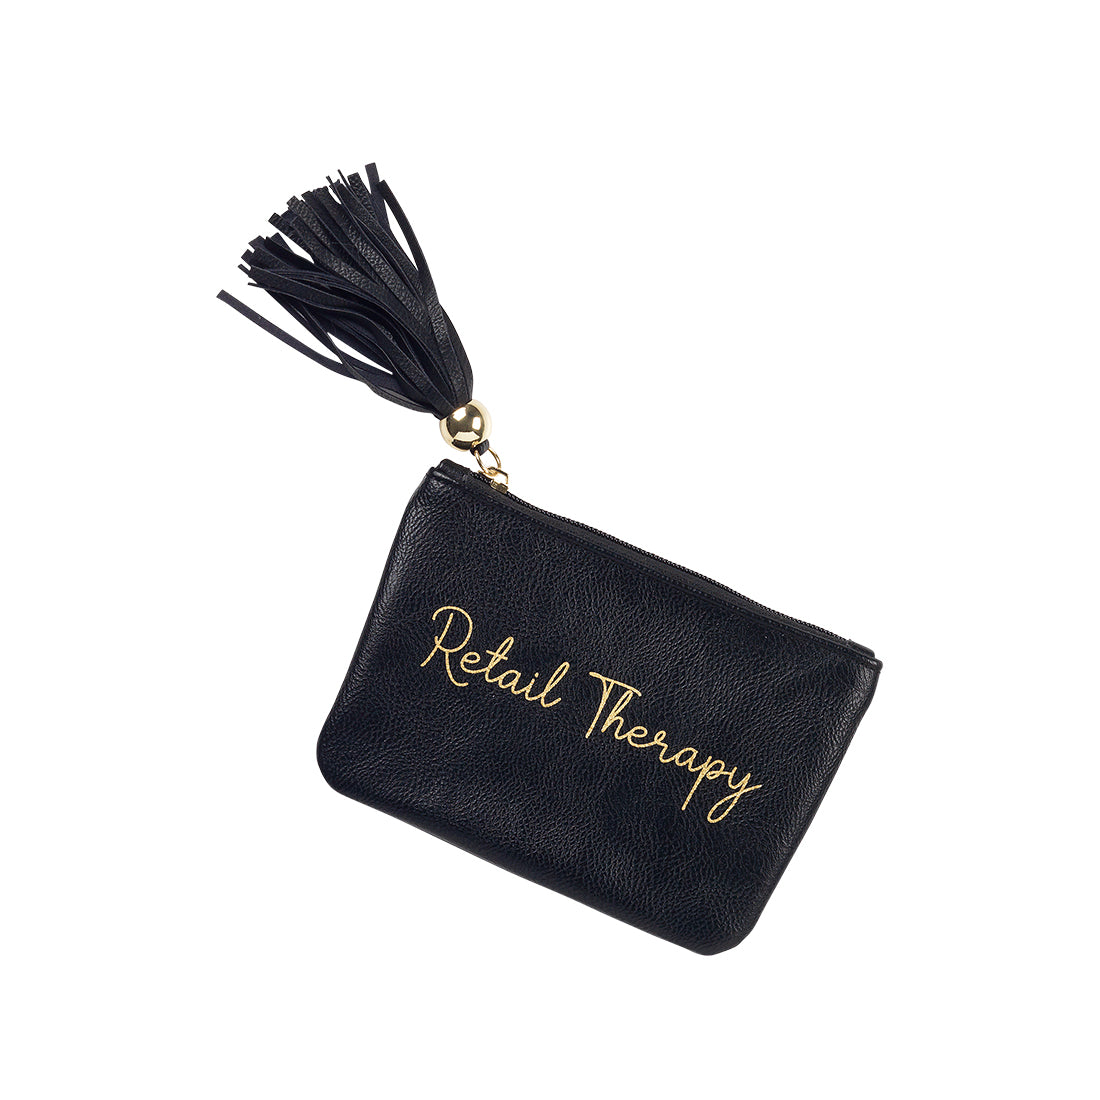 Personalized this Black Retail Therapy Coin Purse